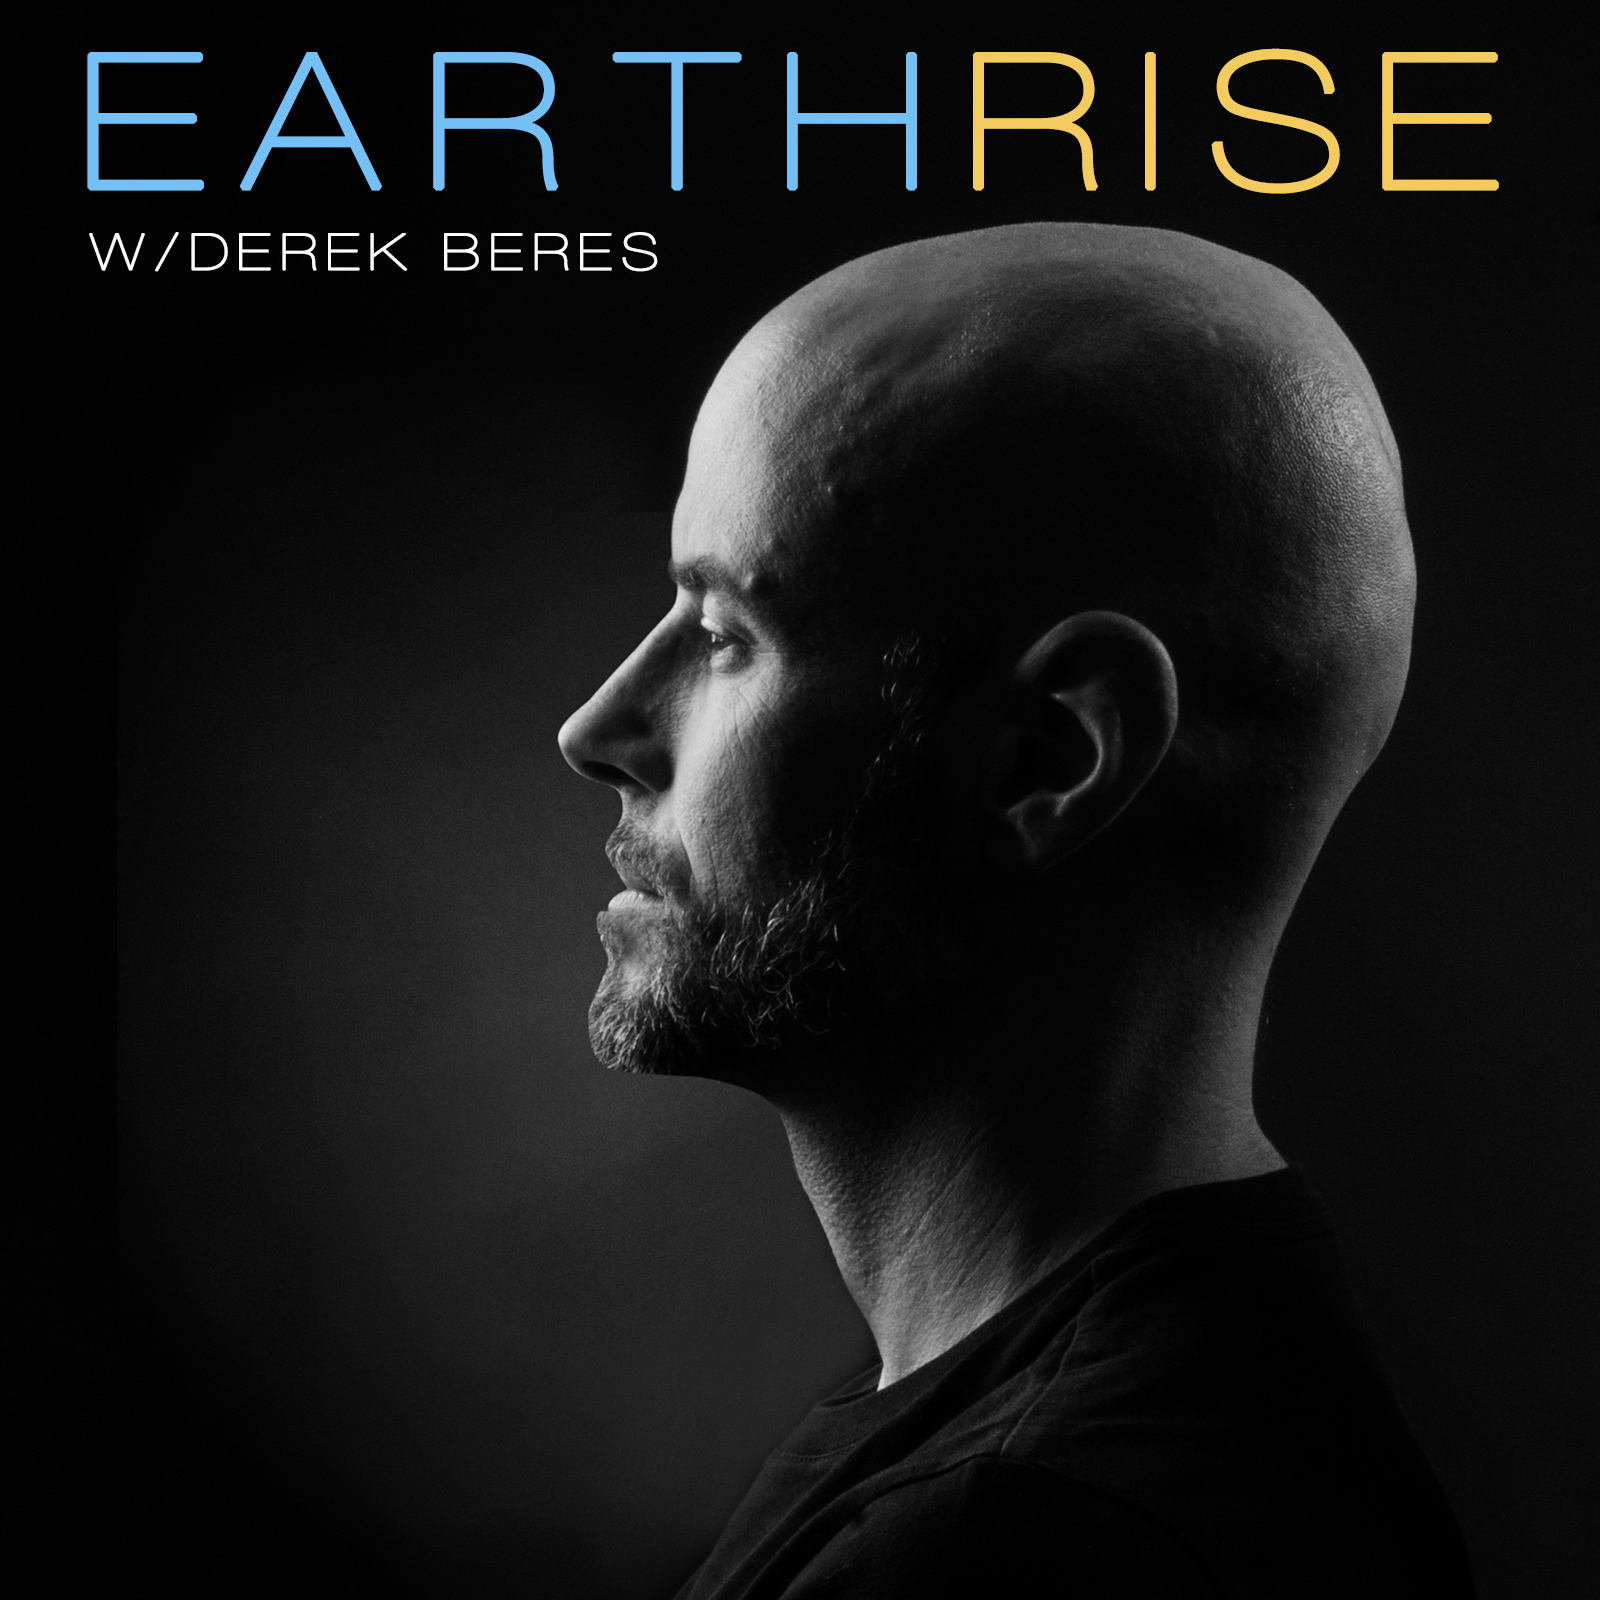 earthrise podcast w/derek beres